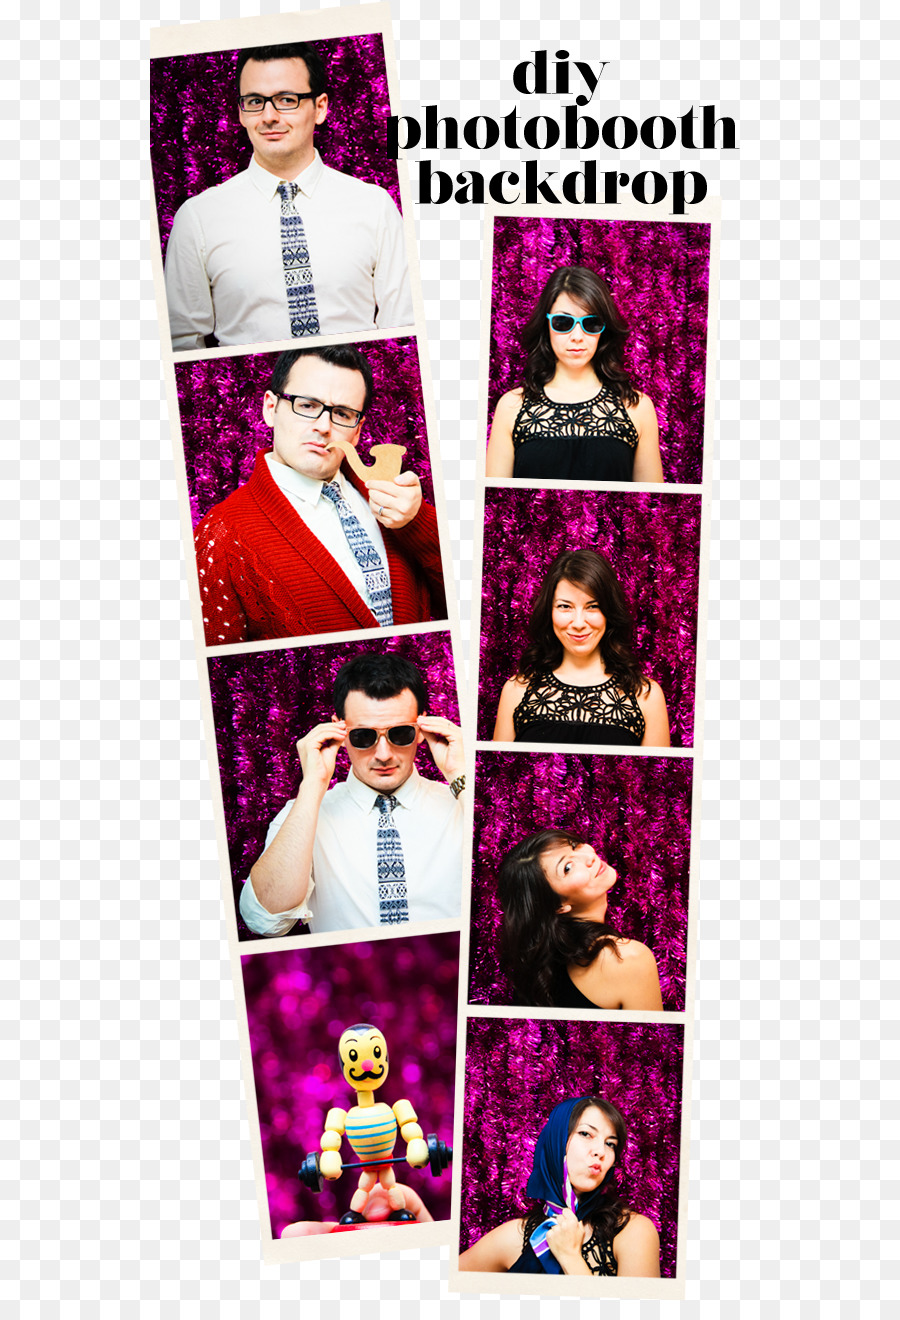 Photography photo booth do it yourself tinsel photobooth png photography photo booth do it yourself tinsel photobooth solutioingenieria Images